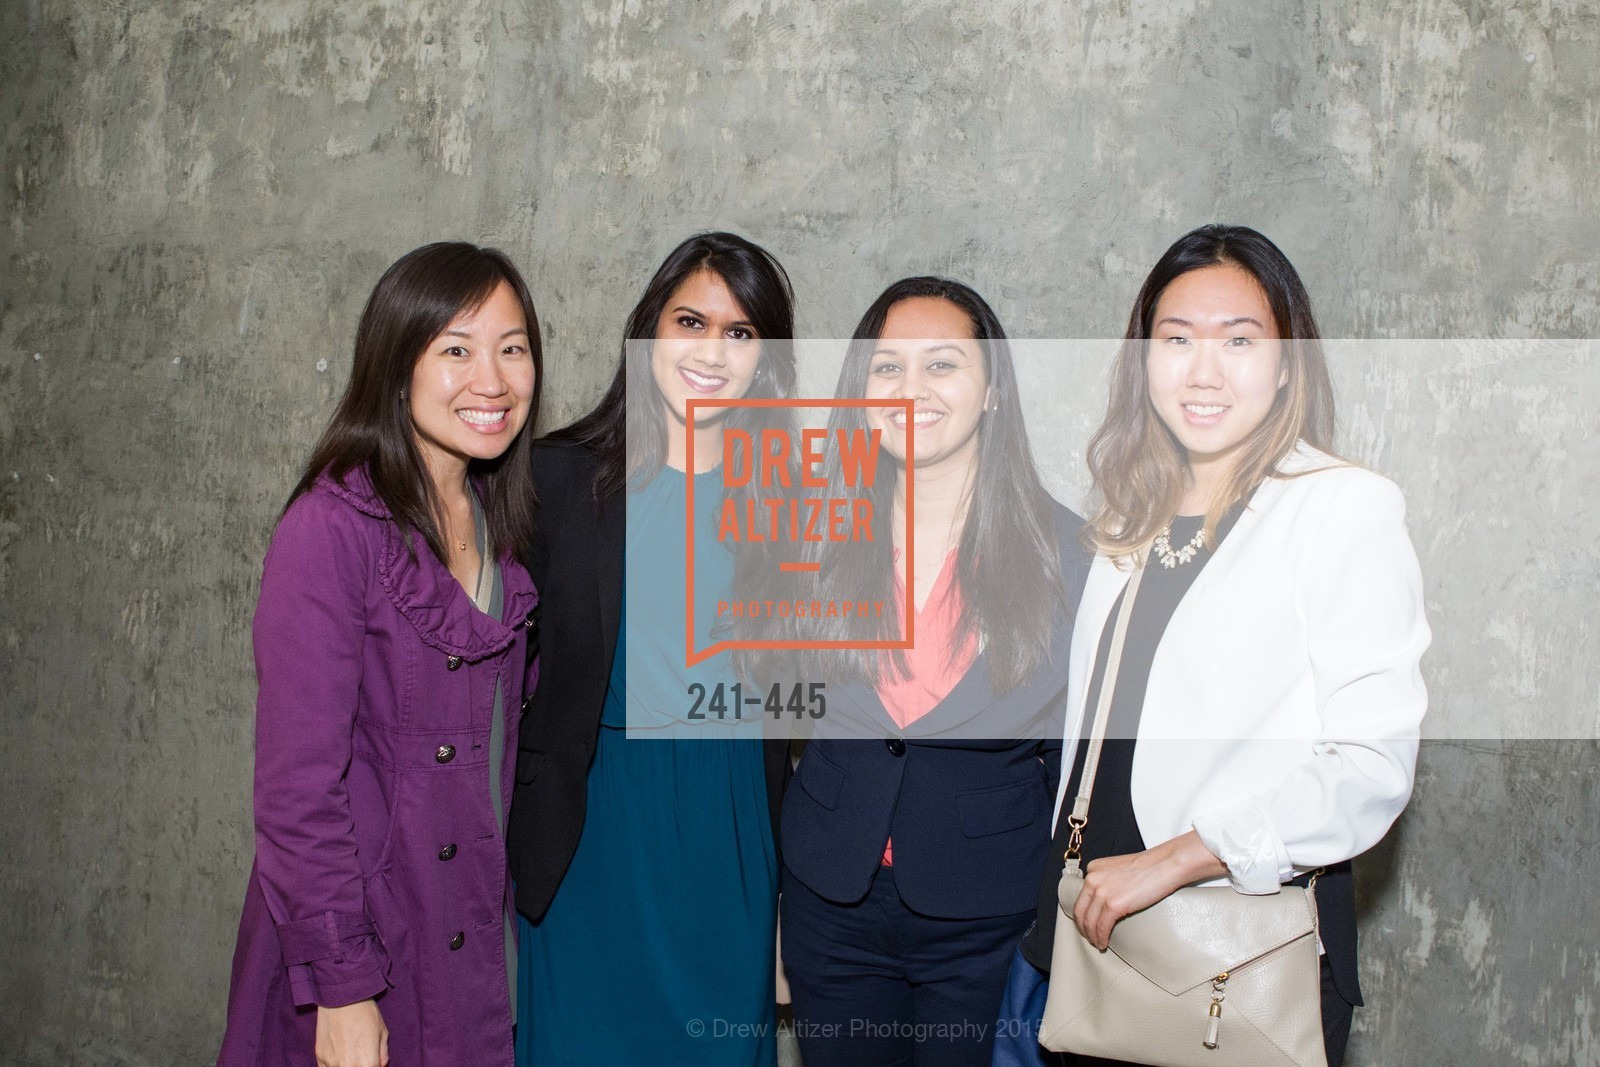 Calvina Chang, Reeti Jaiswal, Priyam Kulkarni, Jessica Kim, Silicon Valley Education Foundation's PIONEERS & PURPOSE, Computer History Museum. 1401 N. Shoreline Blvd, November 4th, 2015,Drew Altizer, Drew Altizer Photography, full-service event agency, private events, San Francisco photographer, photographer California